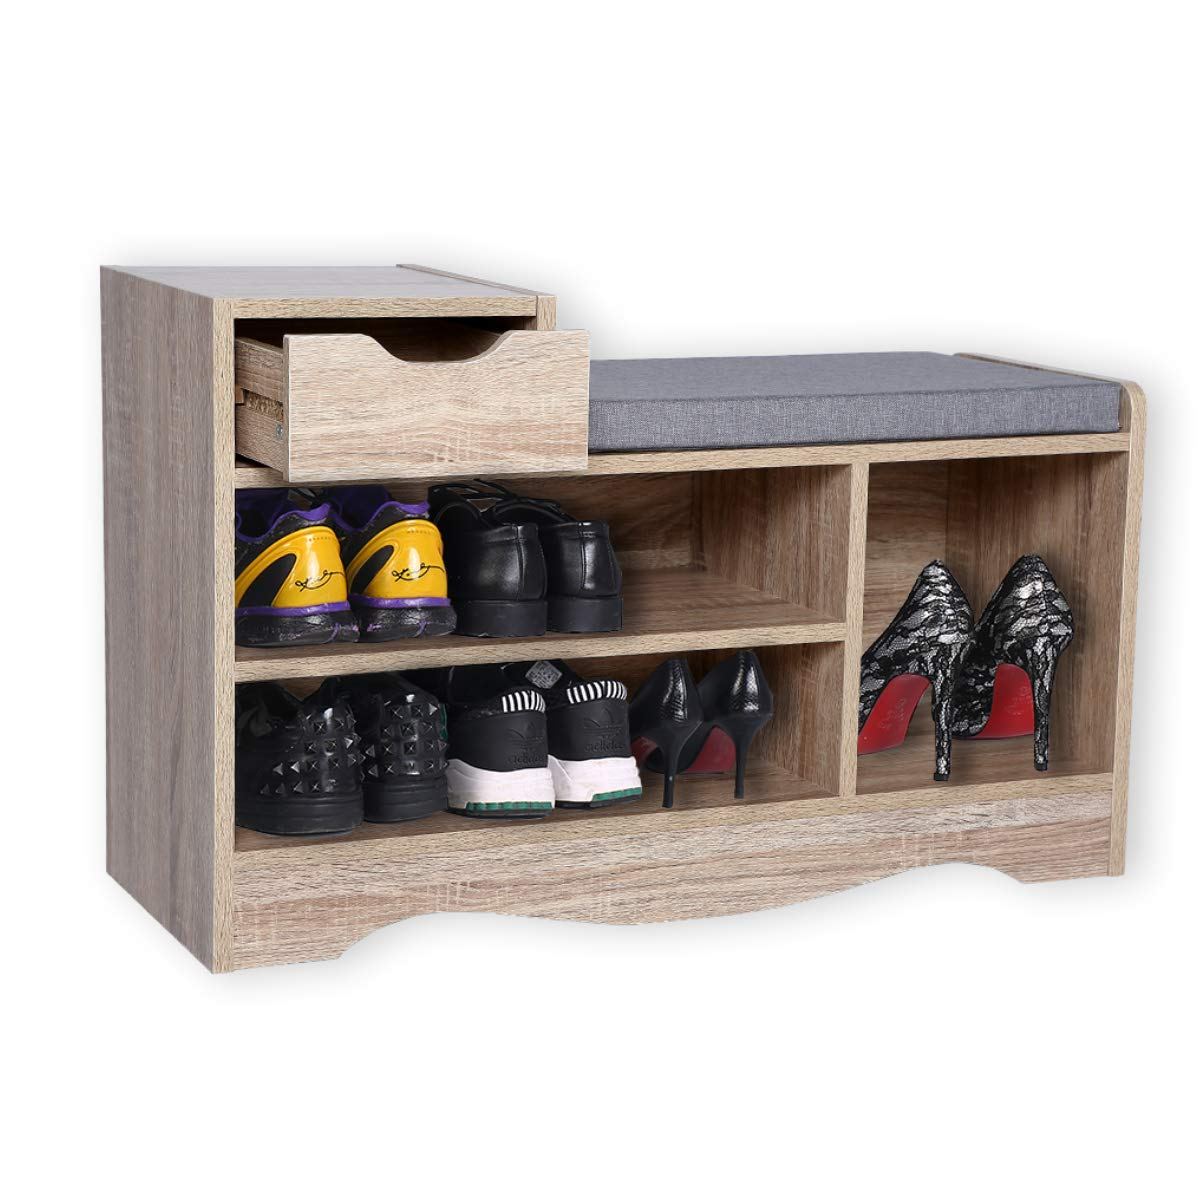 Happy Home Modern Shoe Bench Cabinet, Shoe Storage Racks with Drawer and Seat Cushion for Home, Hallway and Entrance